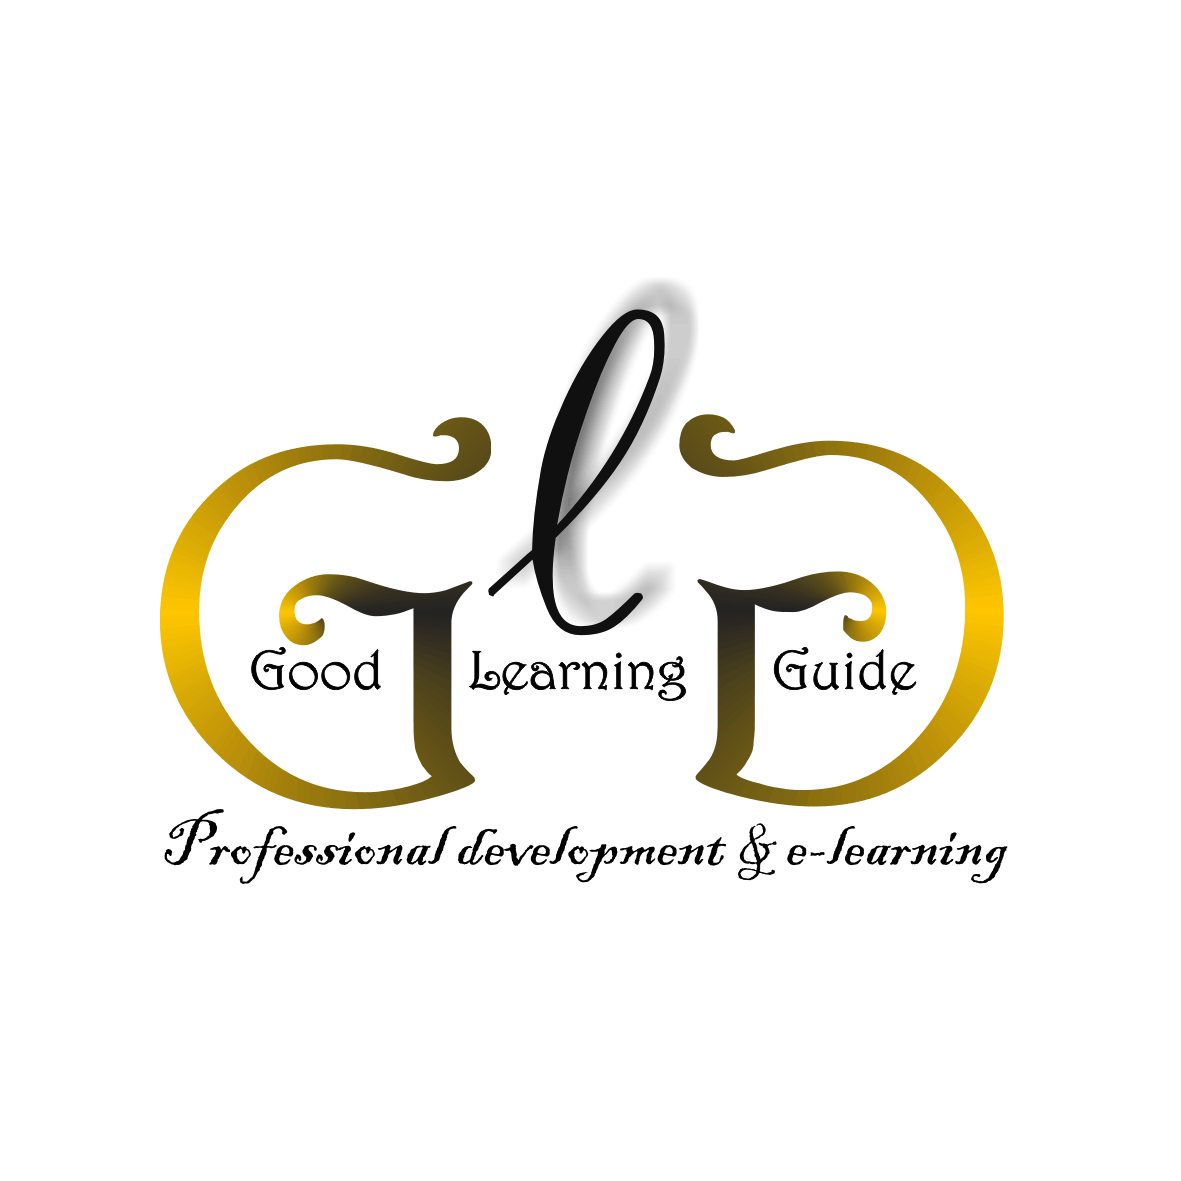 Logo Design by Mara-Patri - Entry No. 85 in the Logo Design Contest Learning guide logo.